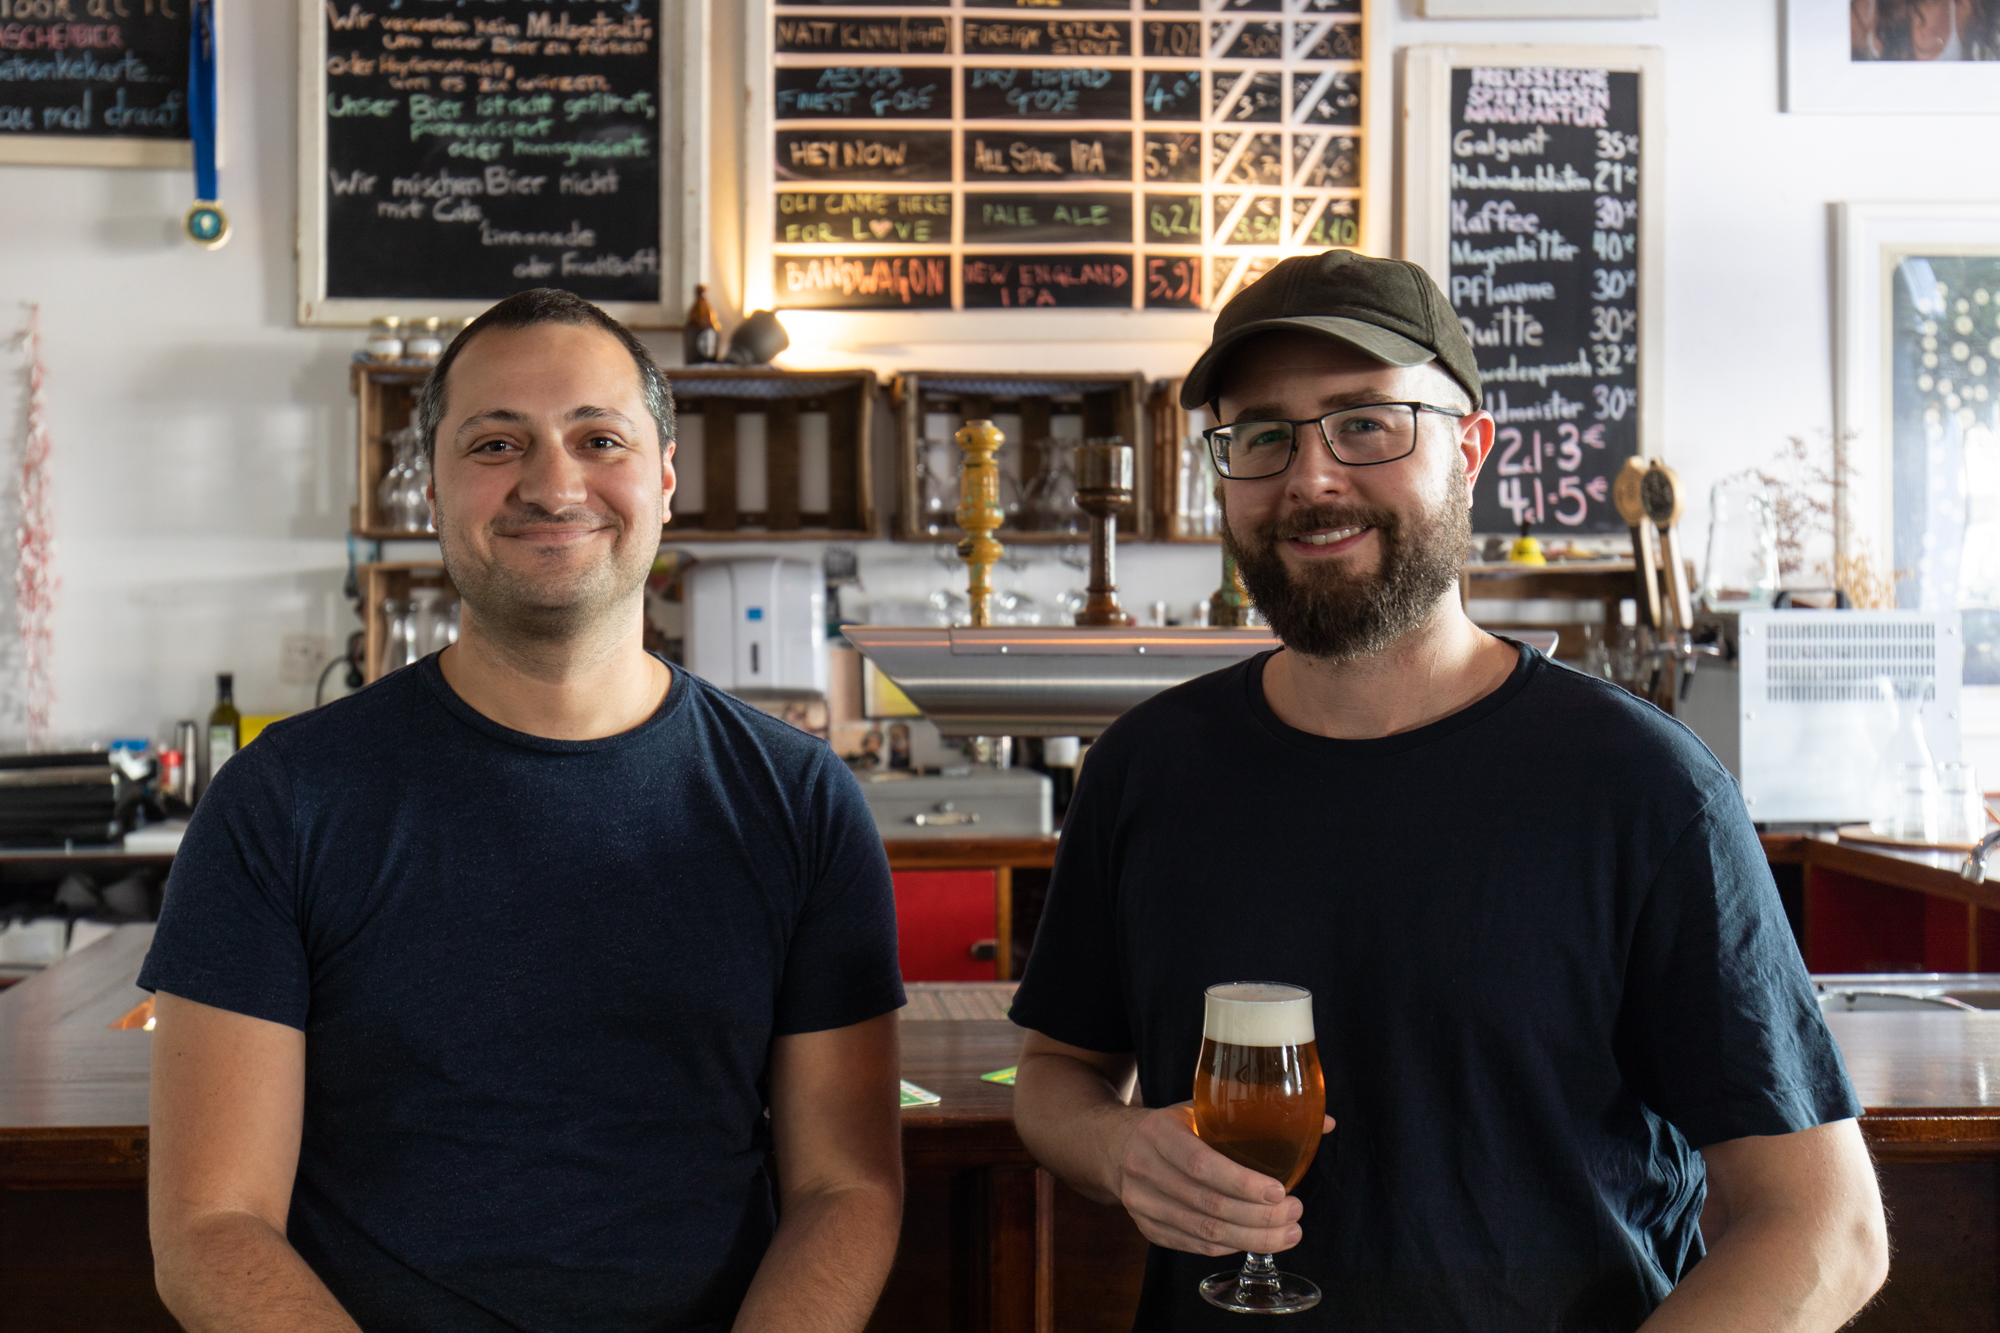 Matt Walthall and Tom Crozier at the Taproom in Vagabund Brauerei, a Nano Brewery in Berlin Wedding